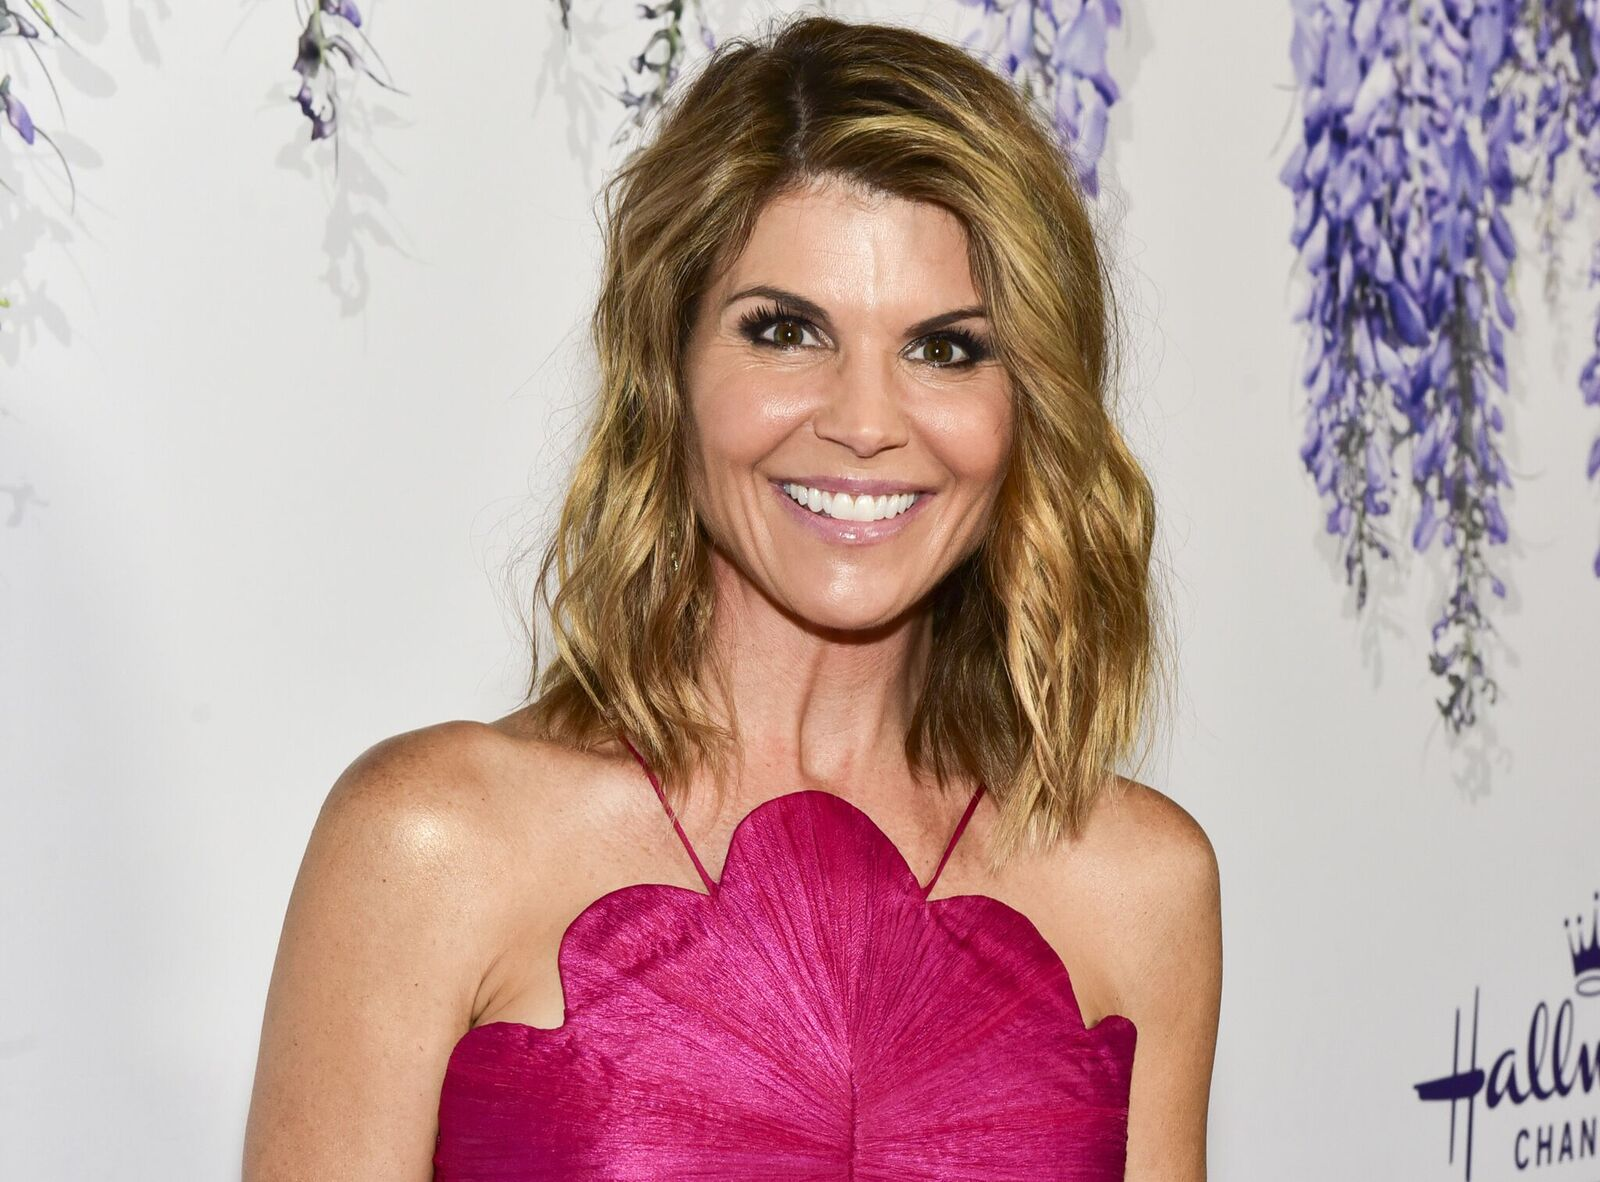 Lori Loughlin at the 2018 Hallmark Channel Summer TCA at a private residence on July 26, 2018. | Photo: Getty Images